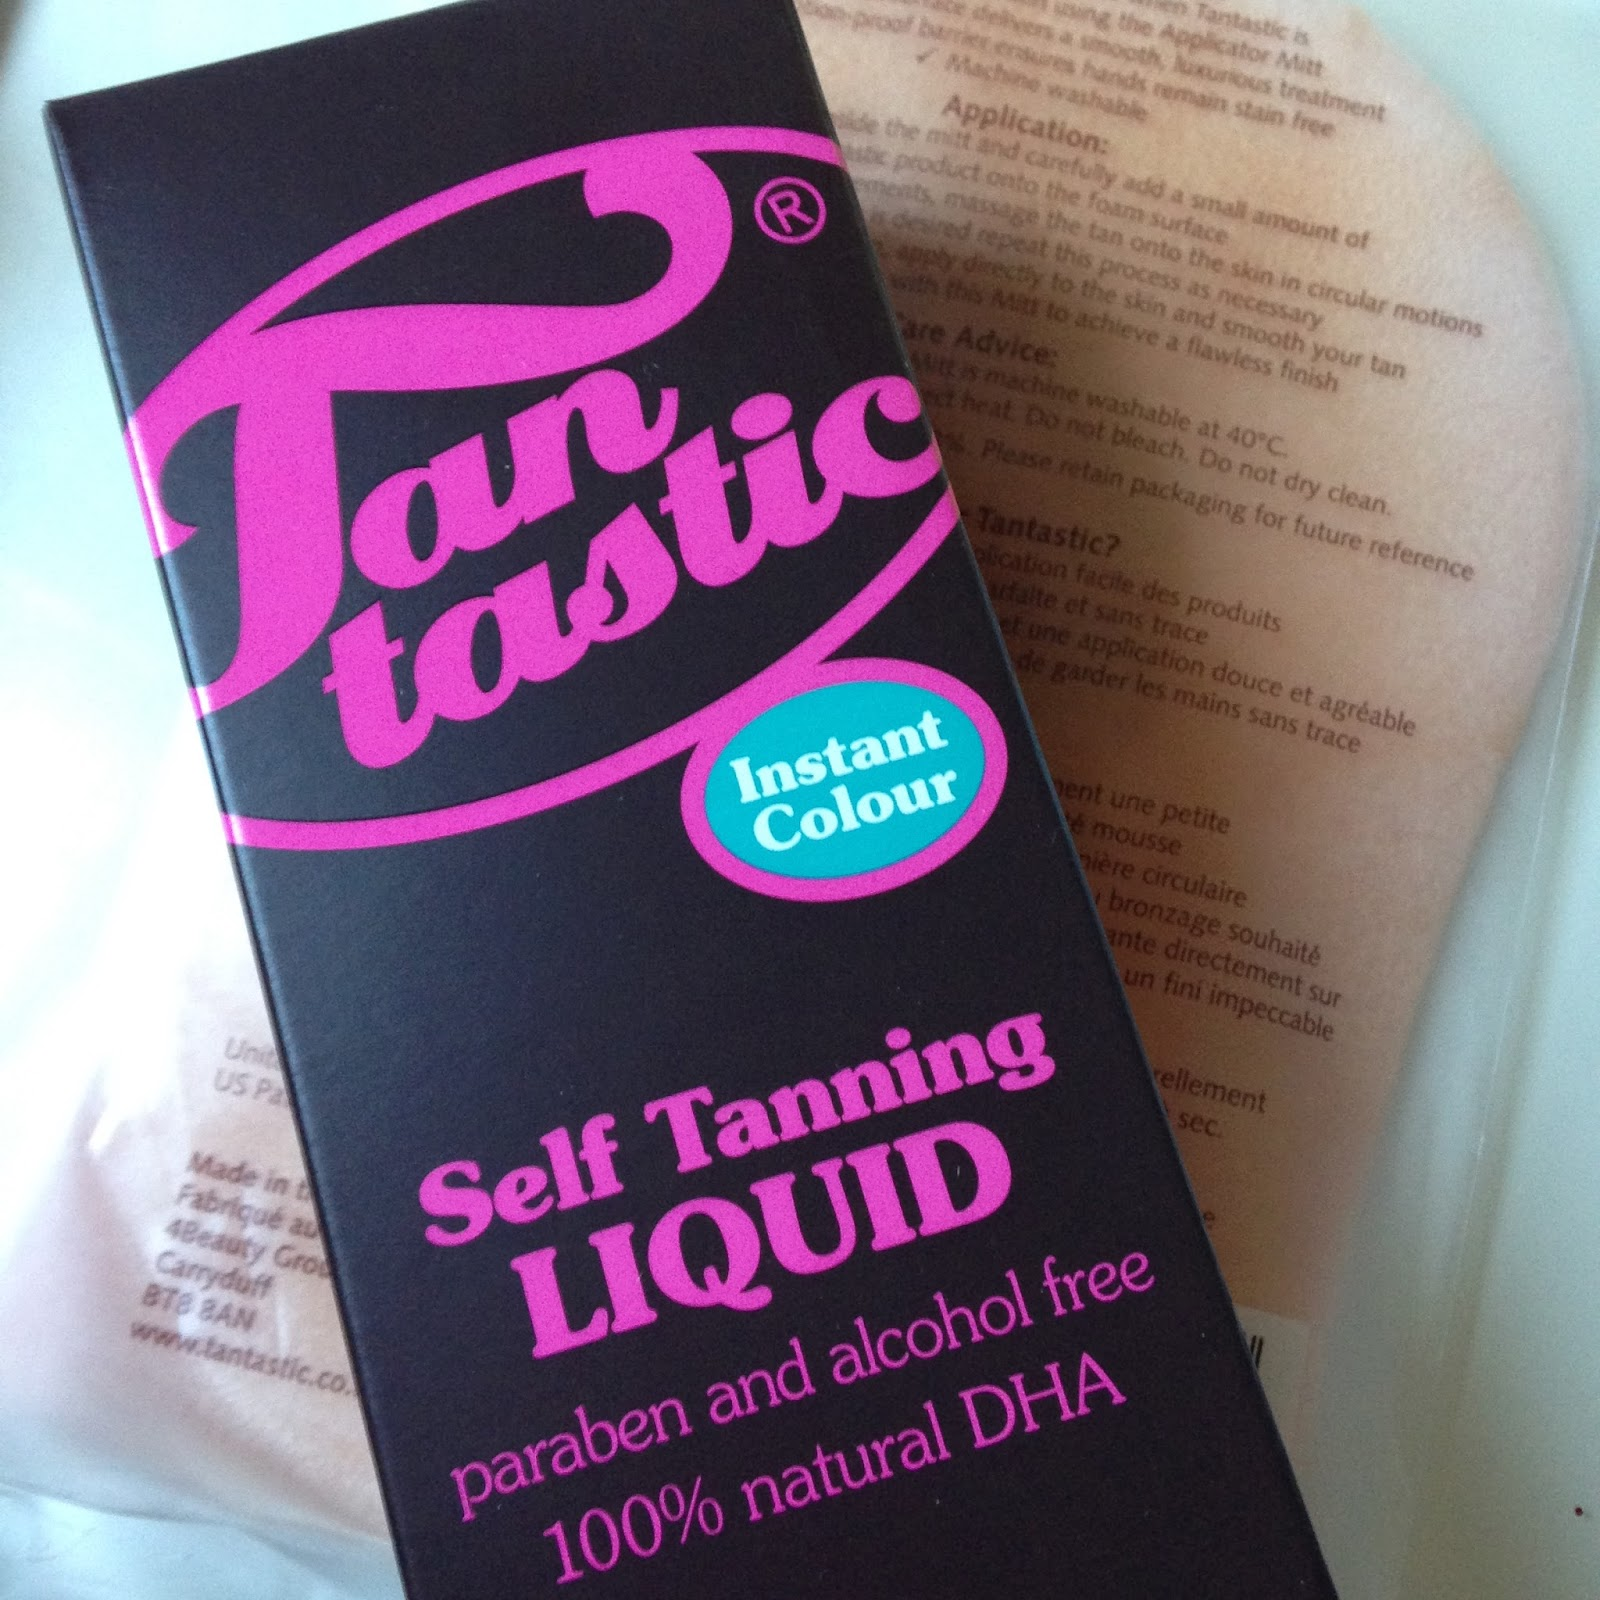 Review - Tantastic Self Tanning Liquid.